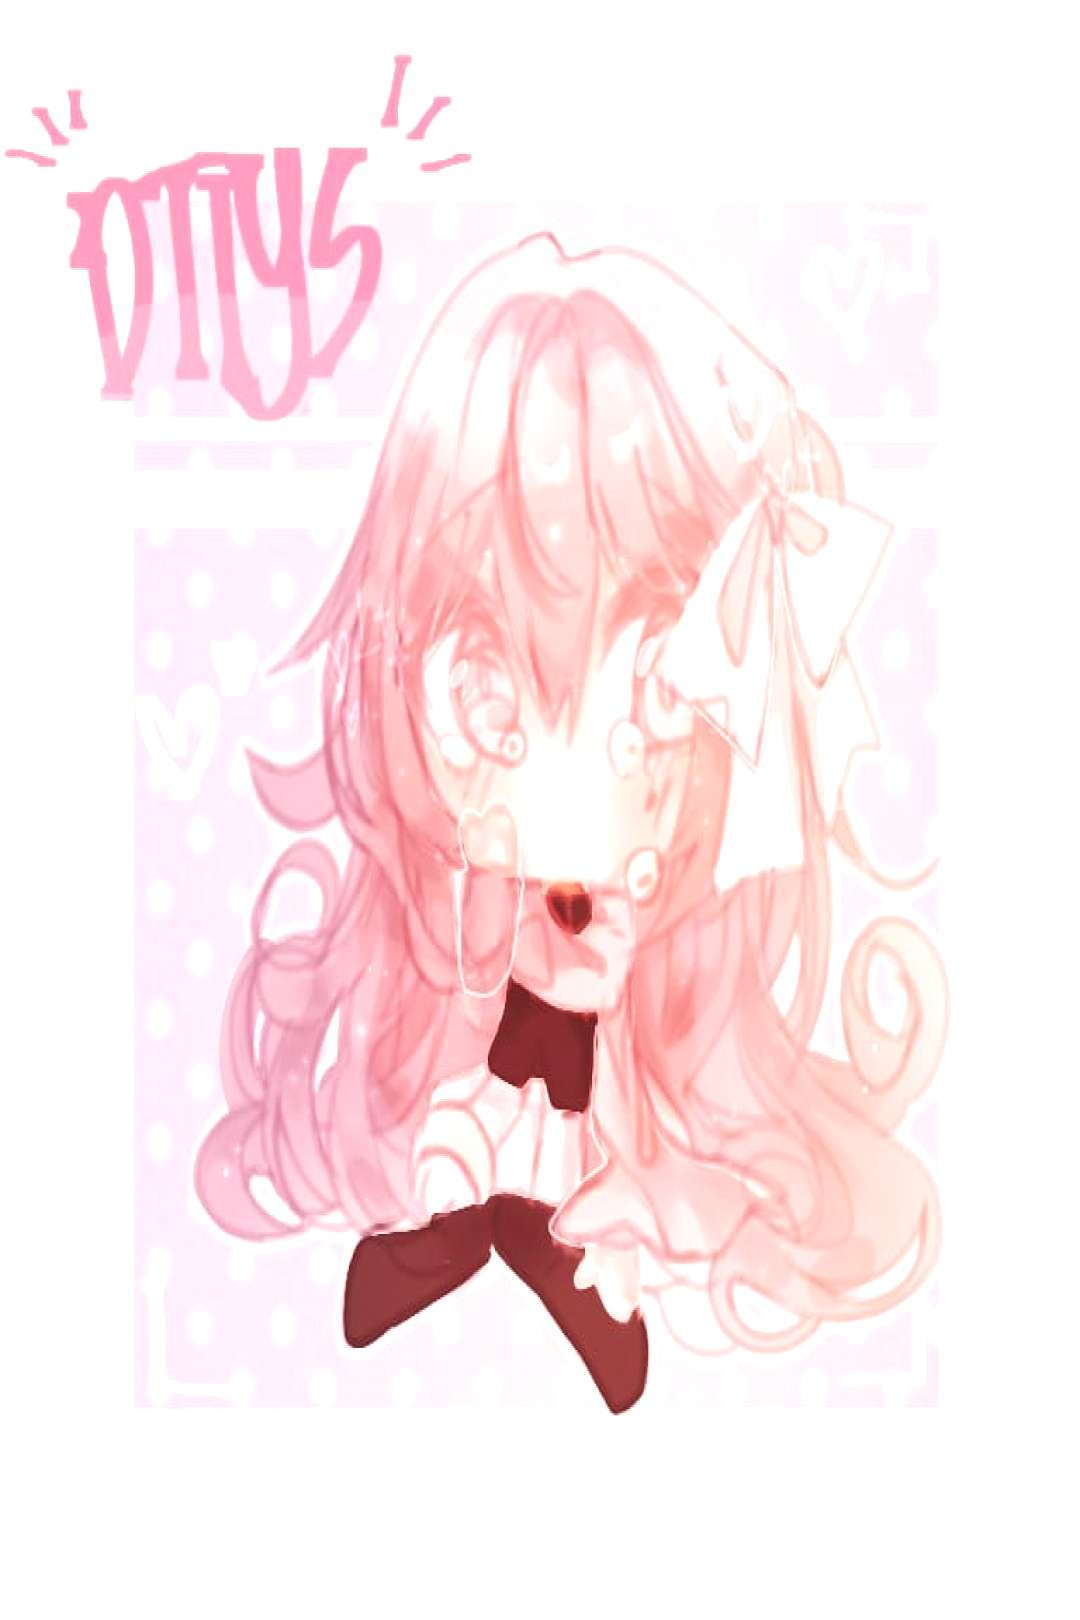 3k dtiys and no its not gachalife (shares r appreciated) Deadline